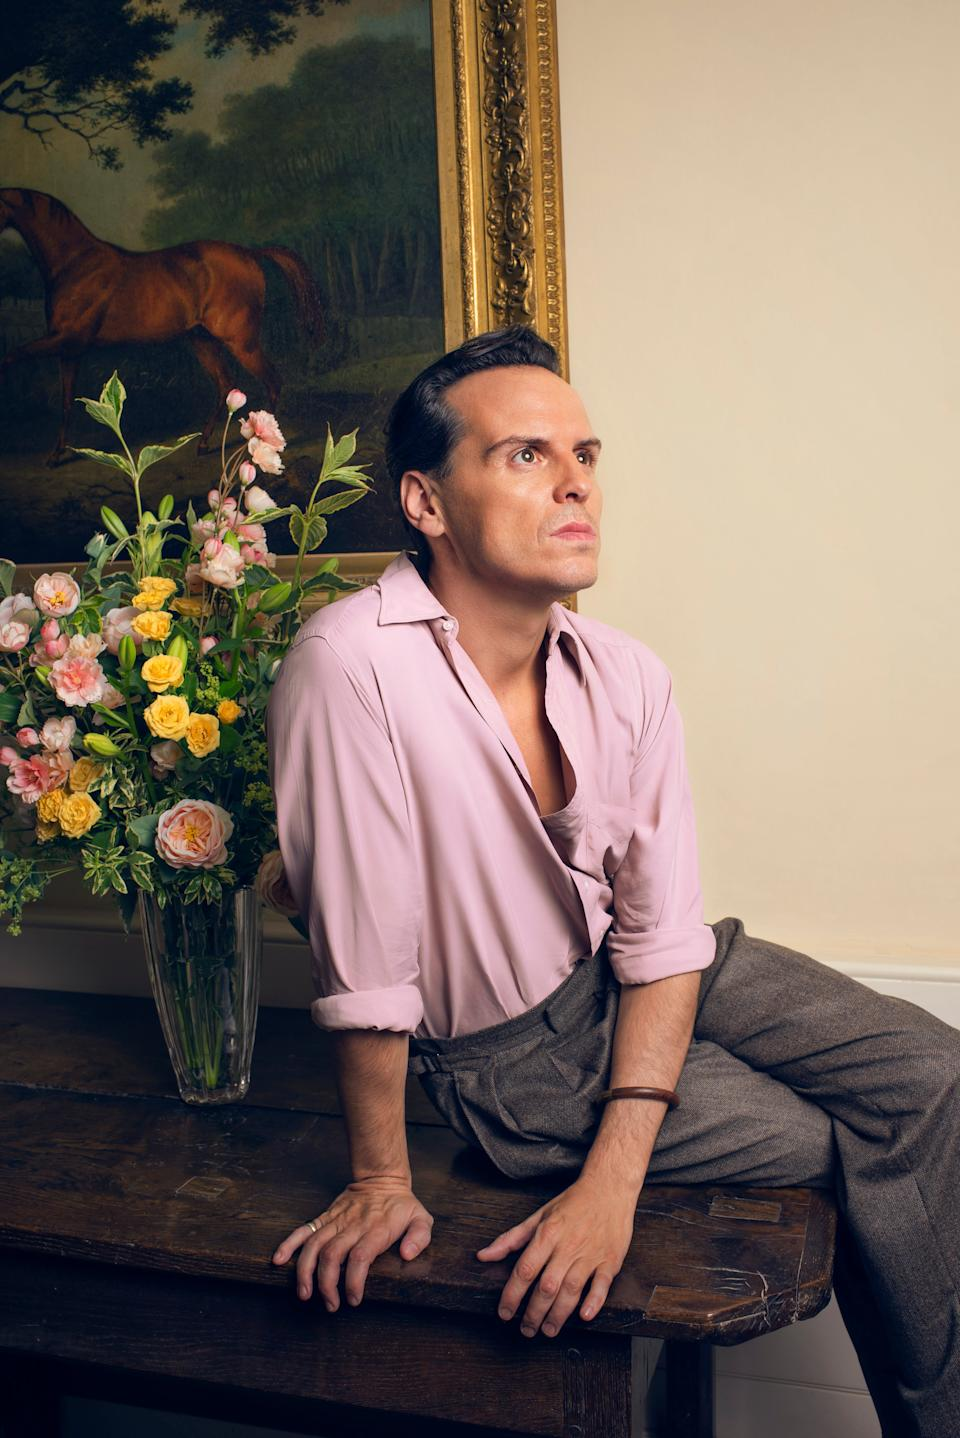 Some good news: Andrew Scott is back on our screens soonBBC Studios/Steve Schofield